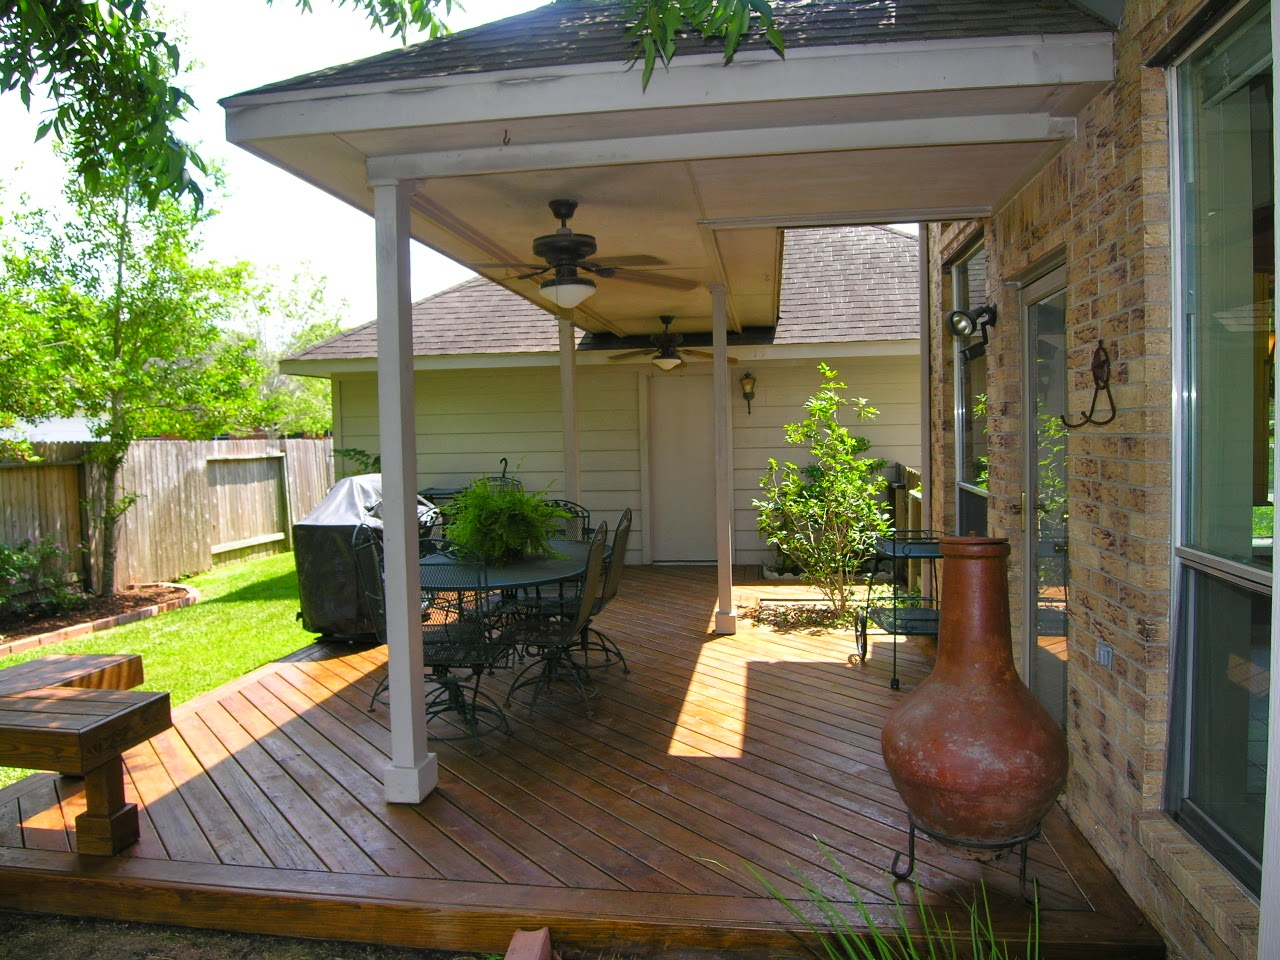 small back porch ideas is a part of small back porch decorating ideas